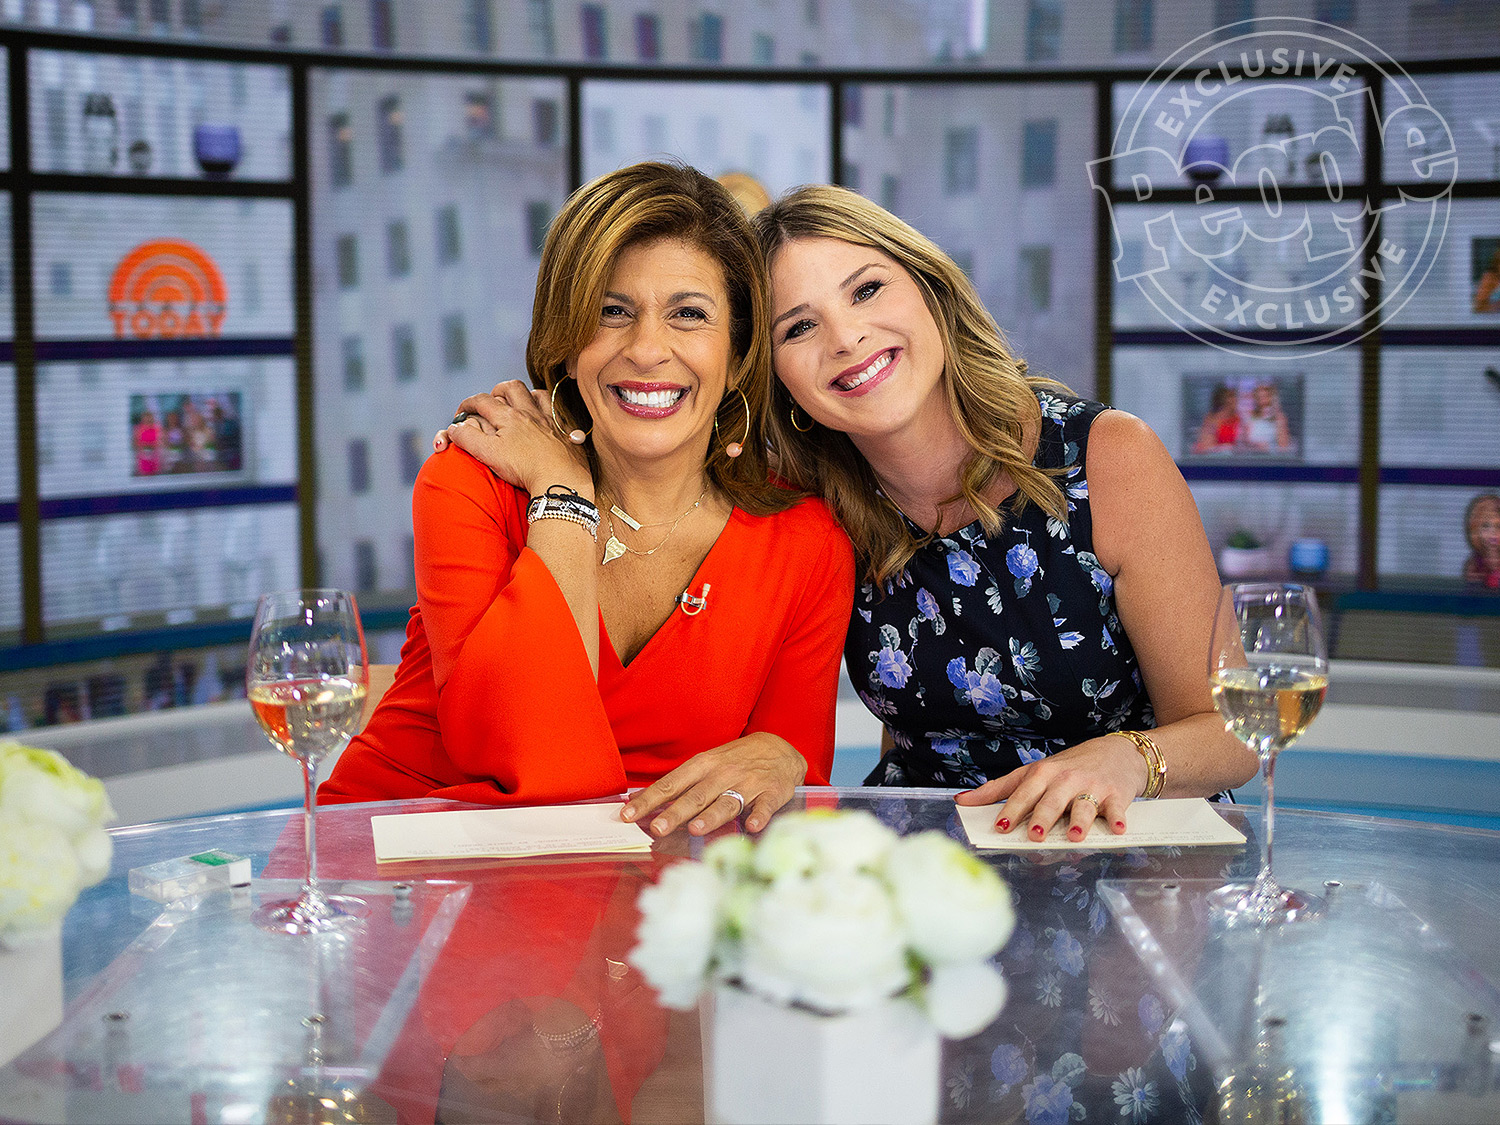 Jenna Bush Hager Will Co-Host Today's Fourth Hour After Kathie Lee Gifford's Departure